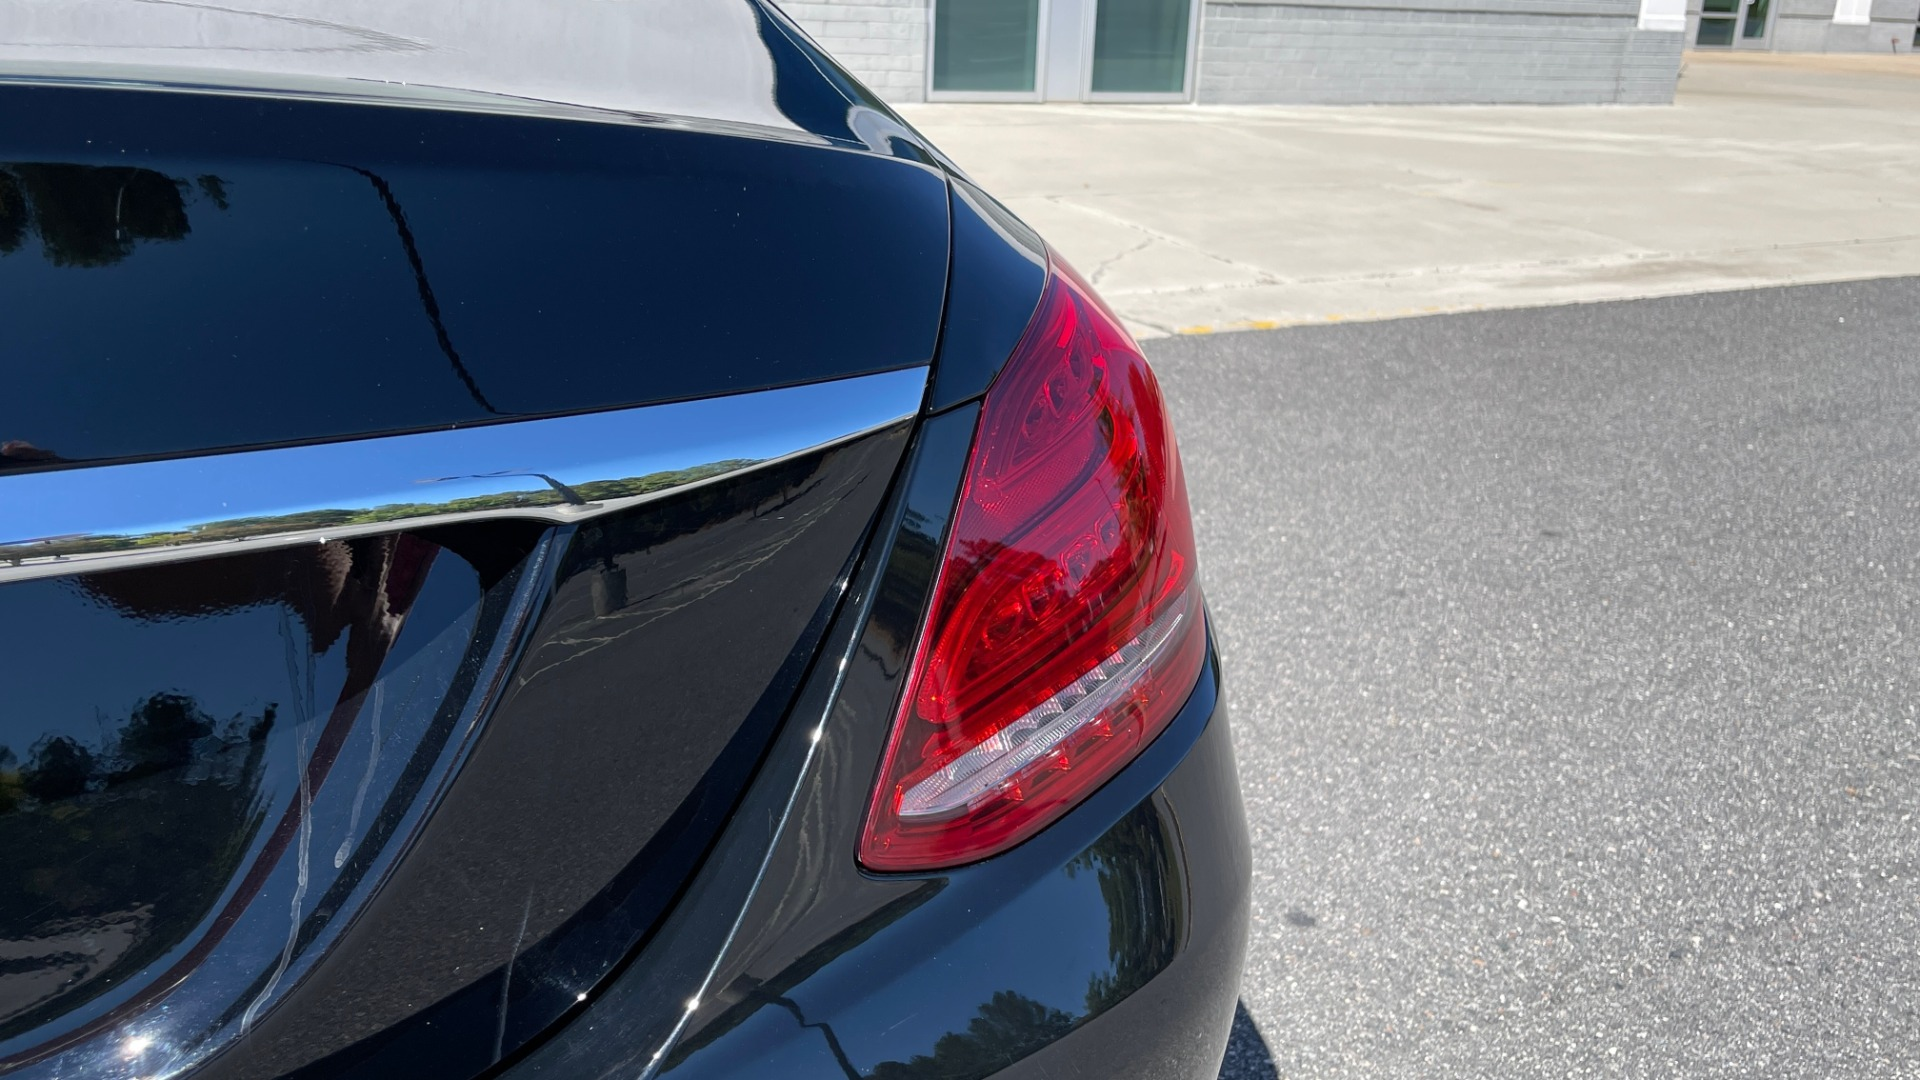 Used 2018 Mercedes-Benz C-CLASS C 300 PREMIUM / APPLE CARPLAY / SUNROOF / REARVIEW for sale $31,995 at Formula Imports in Charlotte NC 28227 22